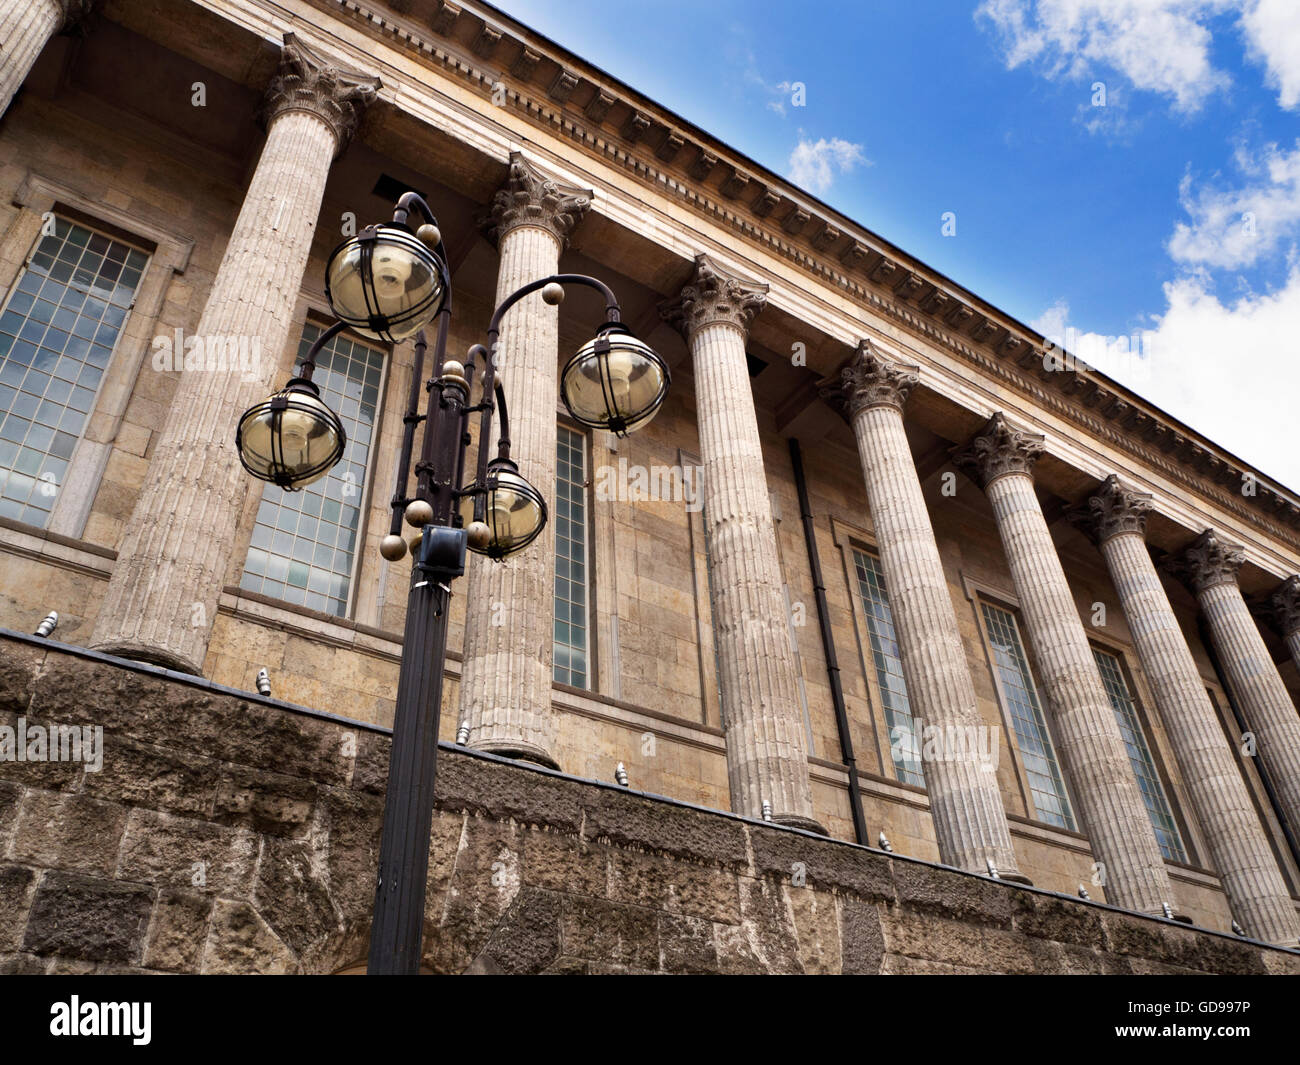 Old Lamp Standard at the Town Hall in Victoria Square Birmingham West Midlands England - Stock Image